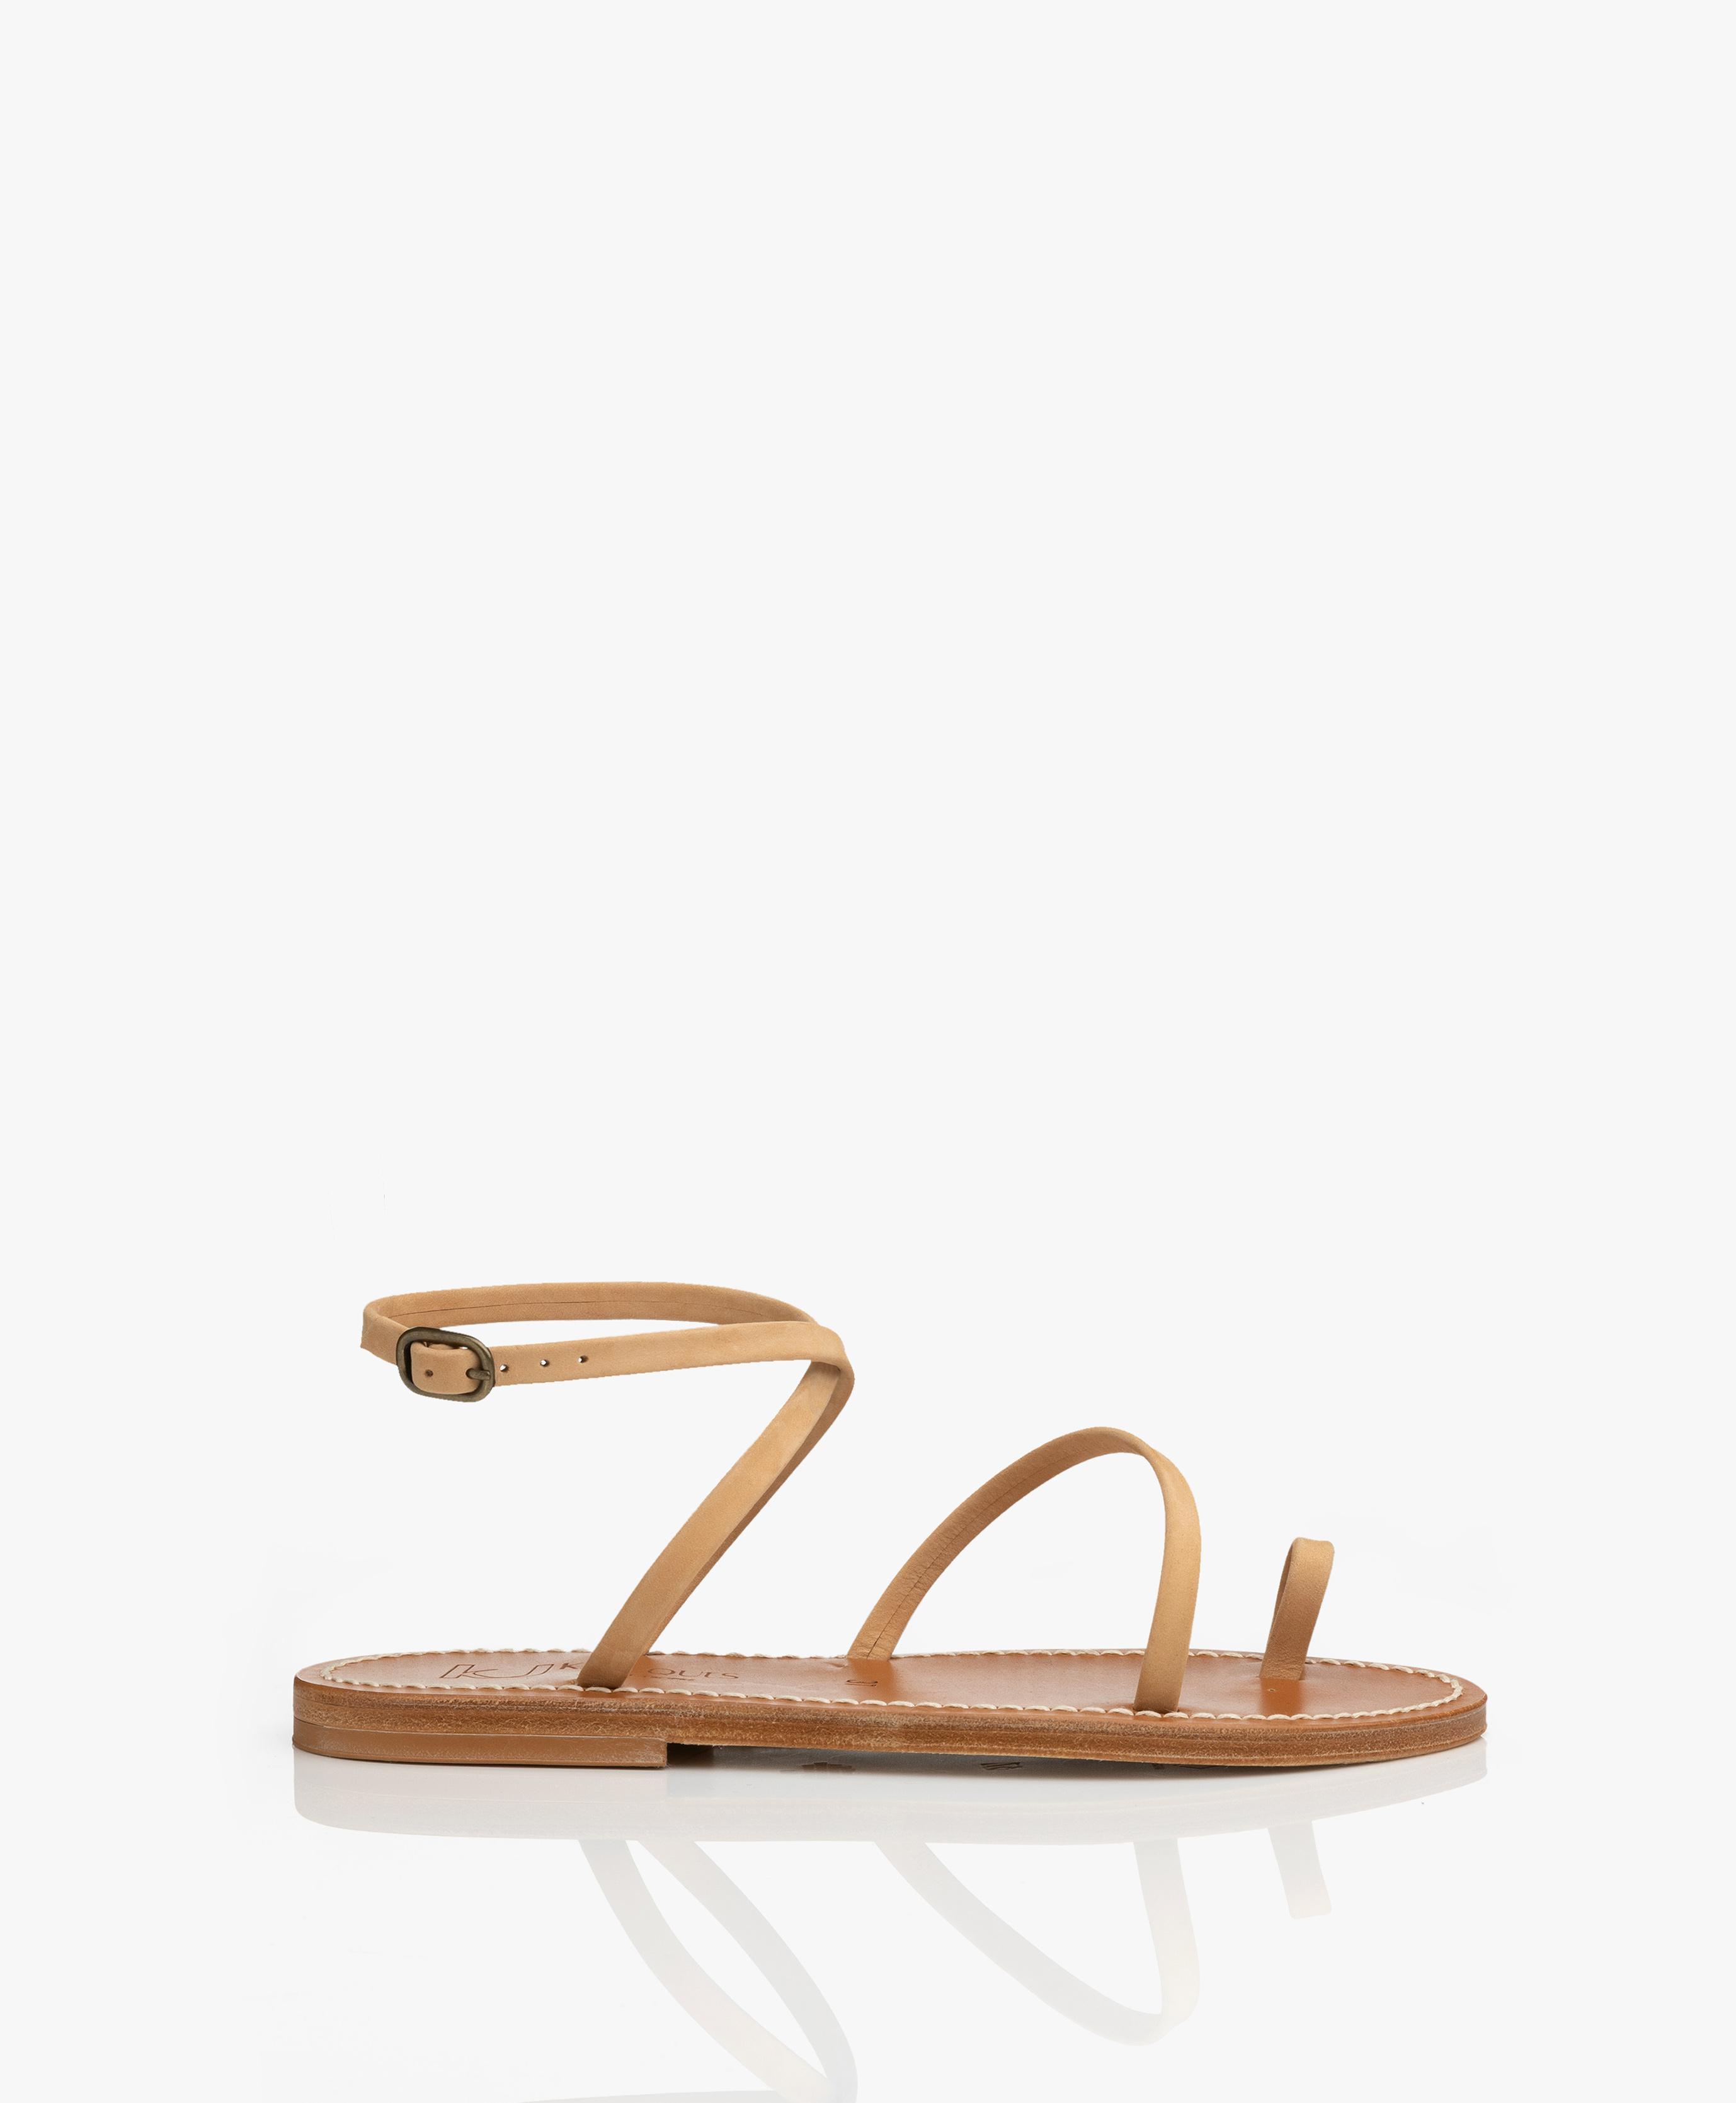 Jacques Womens Loki Sandals K